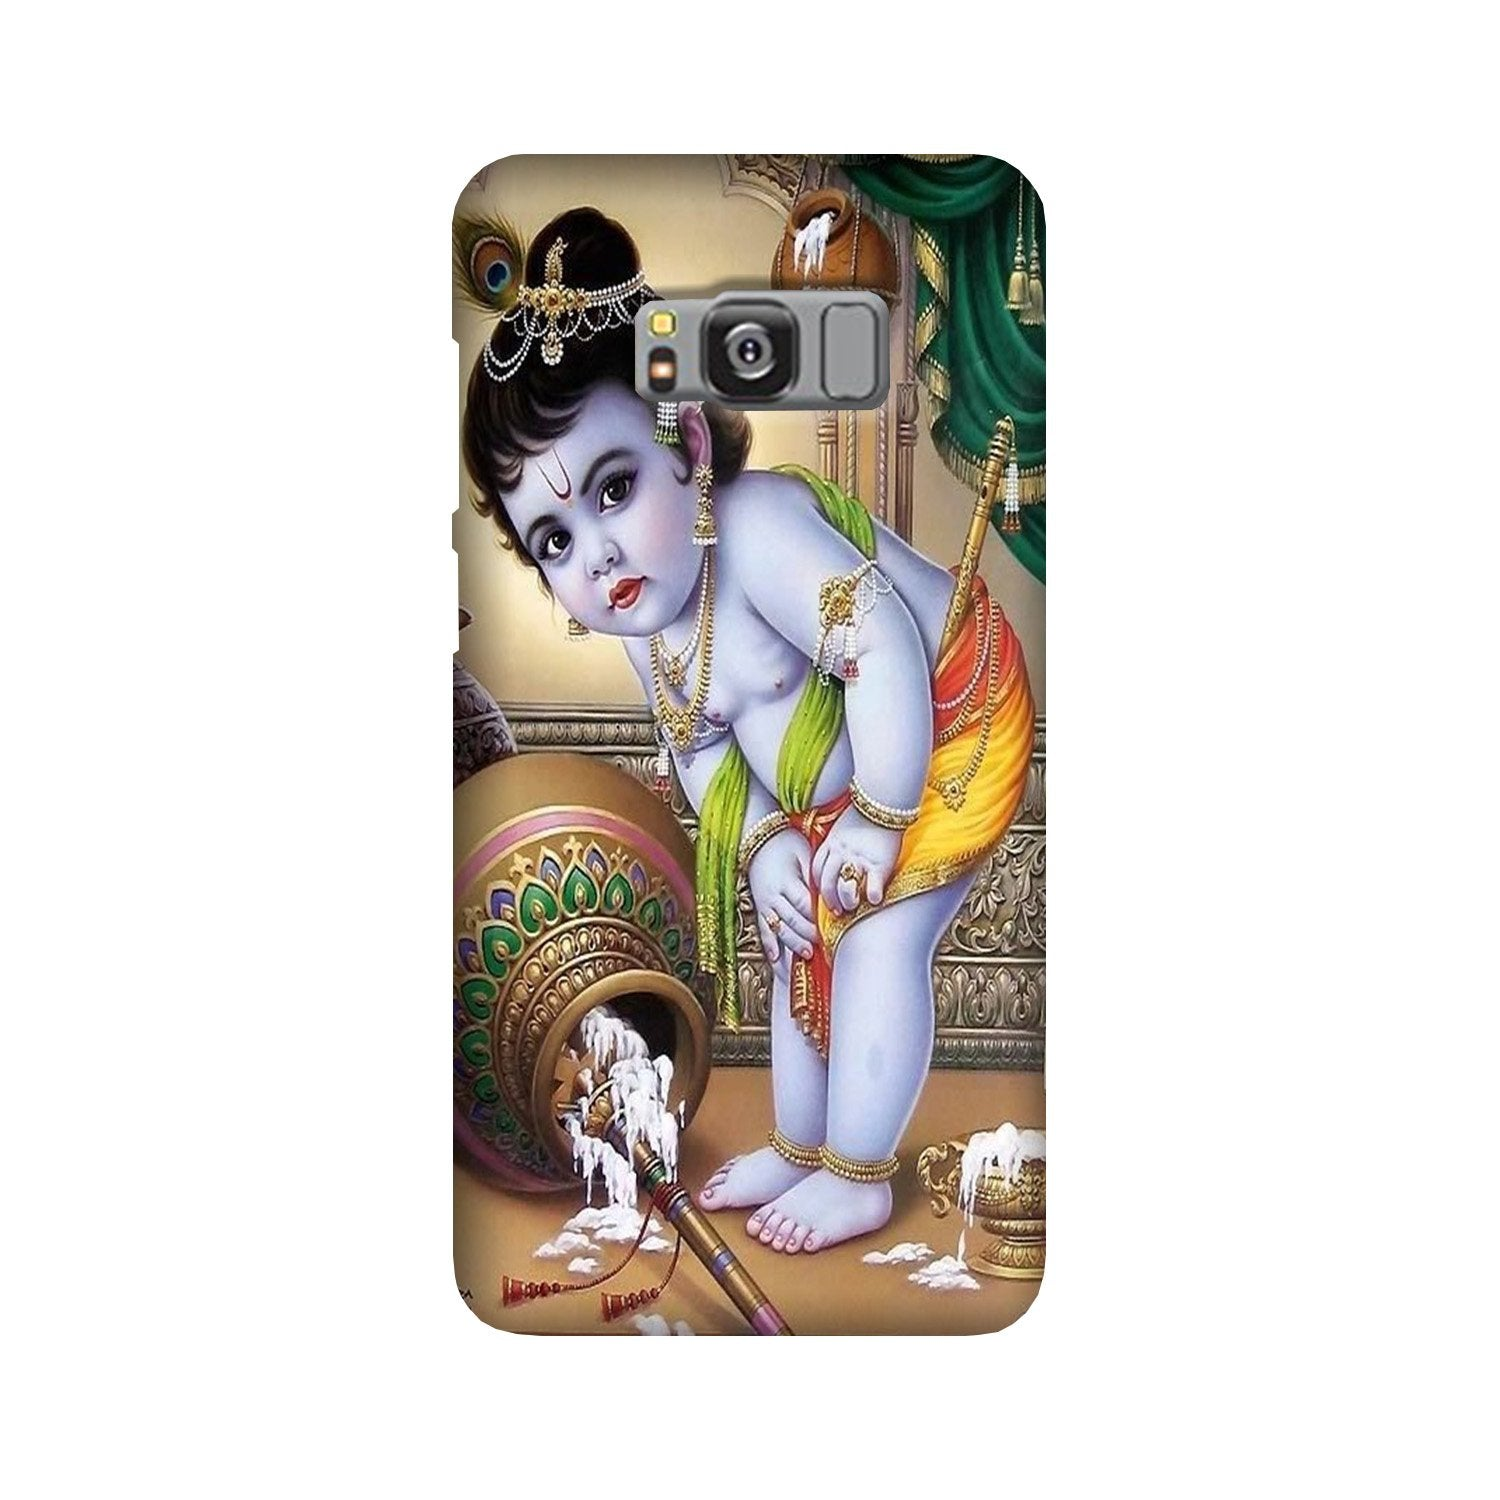 Bal Gopal2 Case for Galaxy S8